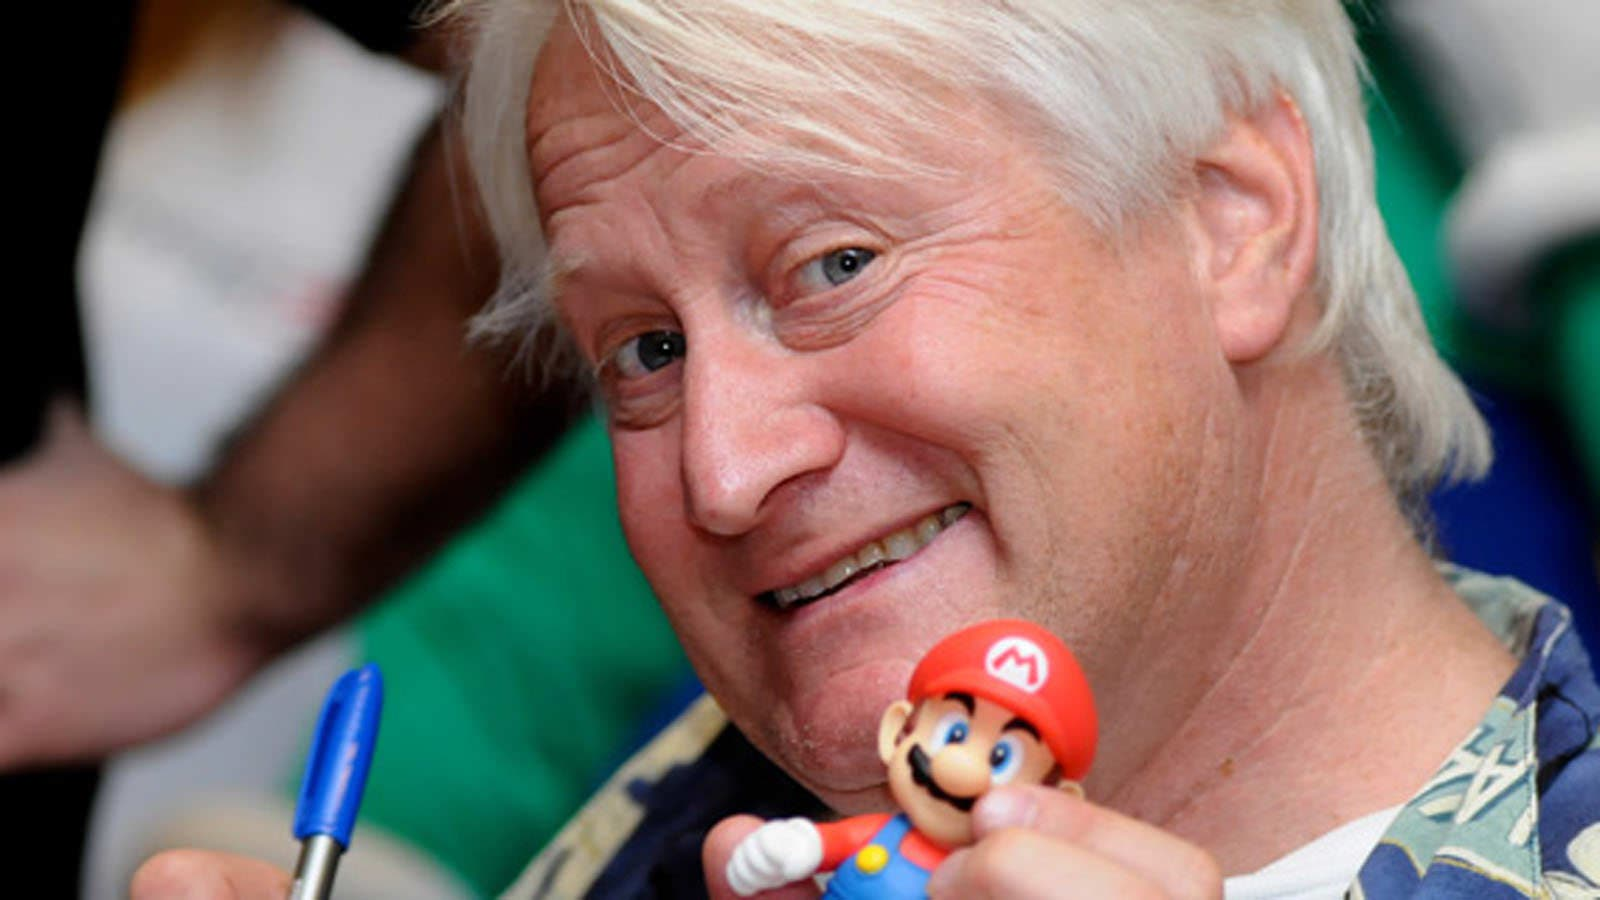 Charles Martinet muestra en Twitter su hype por Super Smash Bros. Ultimate